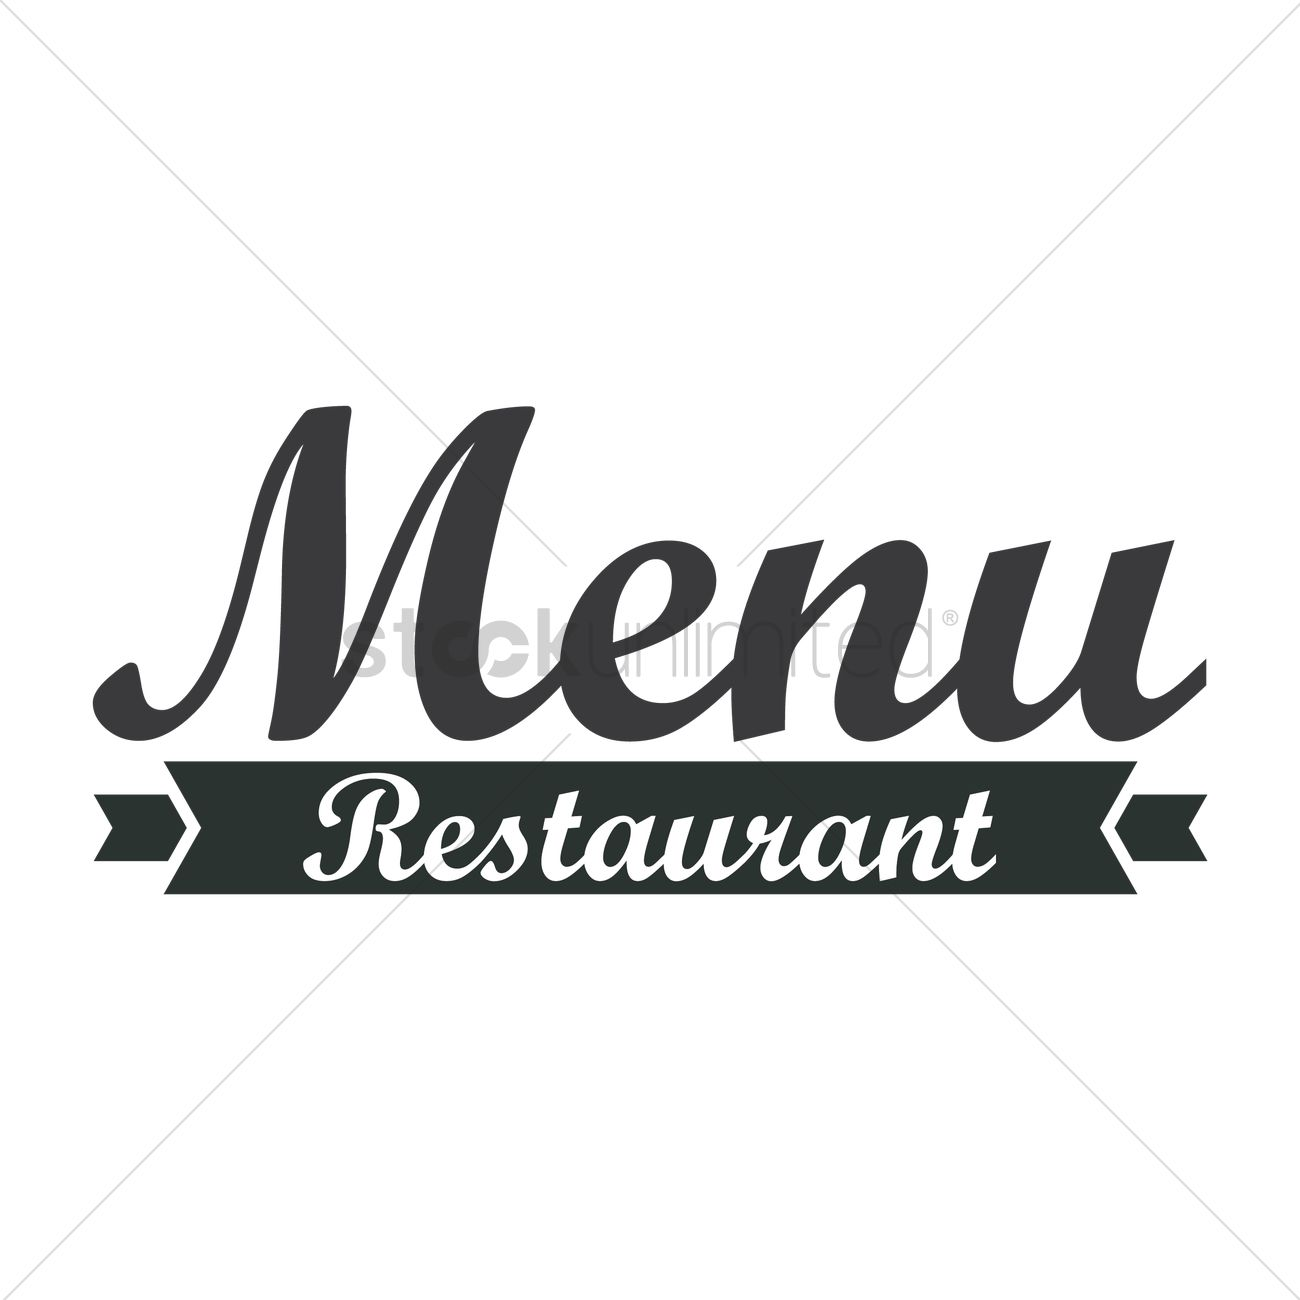 restaurant menu logo icon vector image - 1710150 | stockunlimited